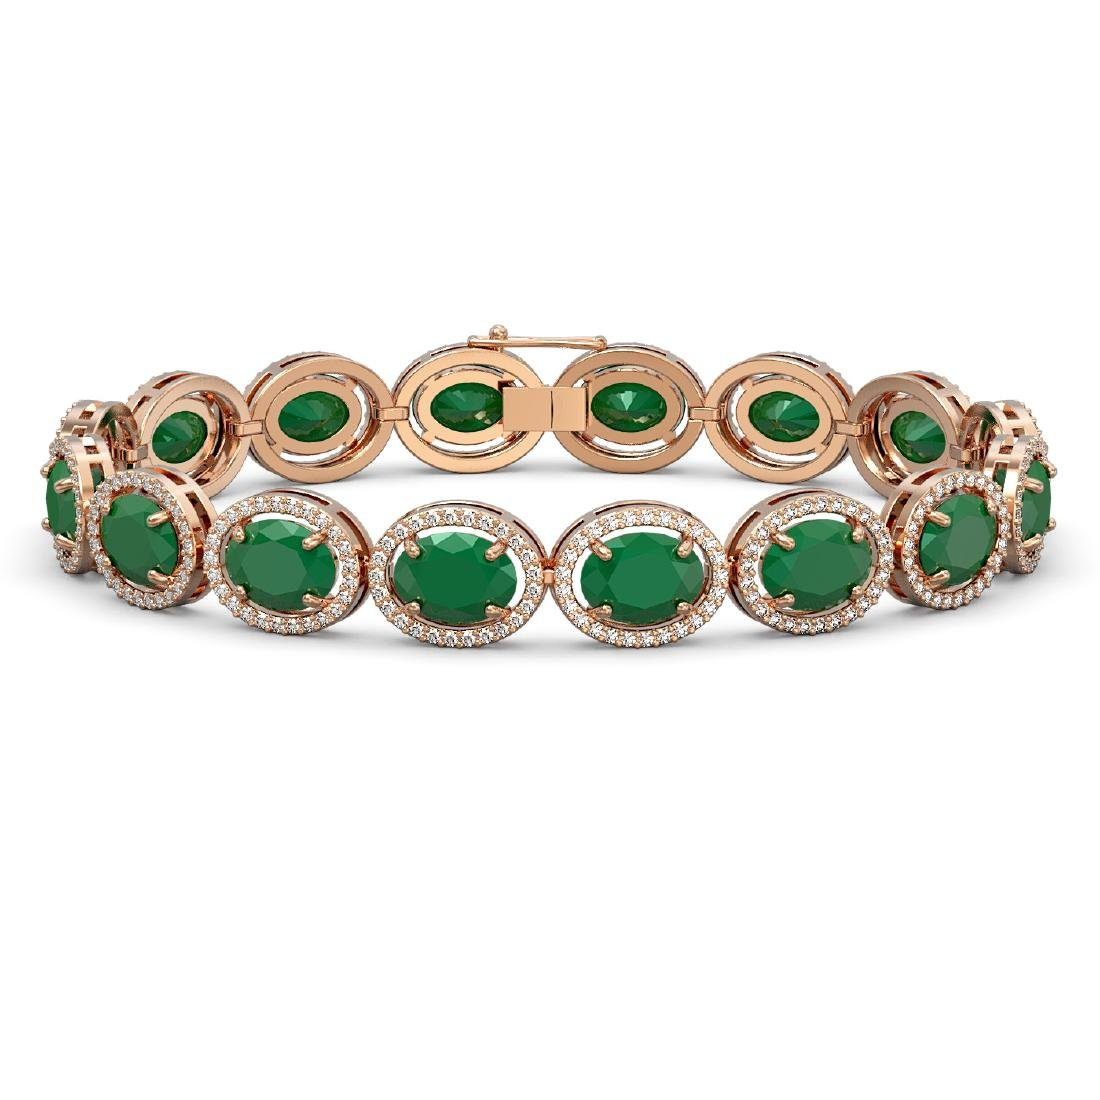 31.79 CTW Emerald & Diamond Halo Bracelet 10K Rose Gold